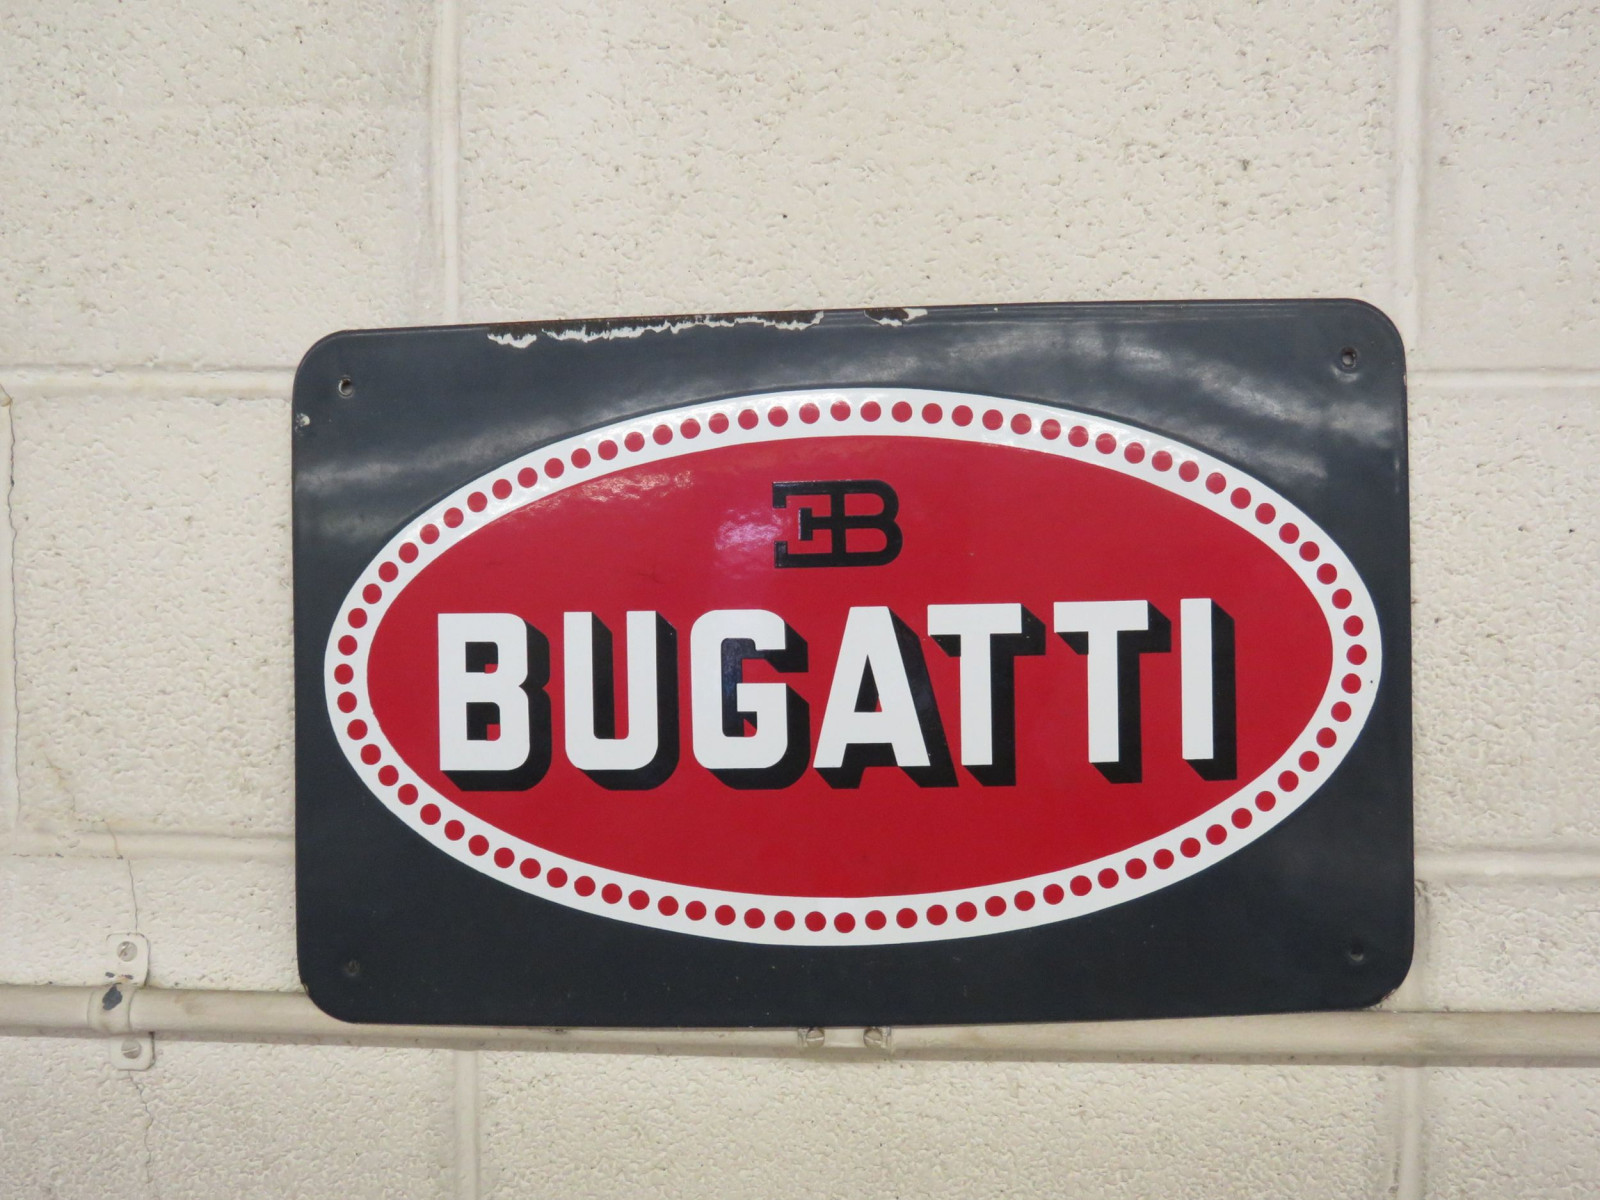 Bugatti Single Sided Porcelain Sign - Image 1